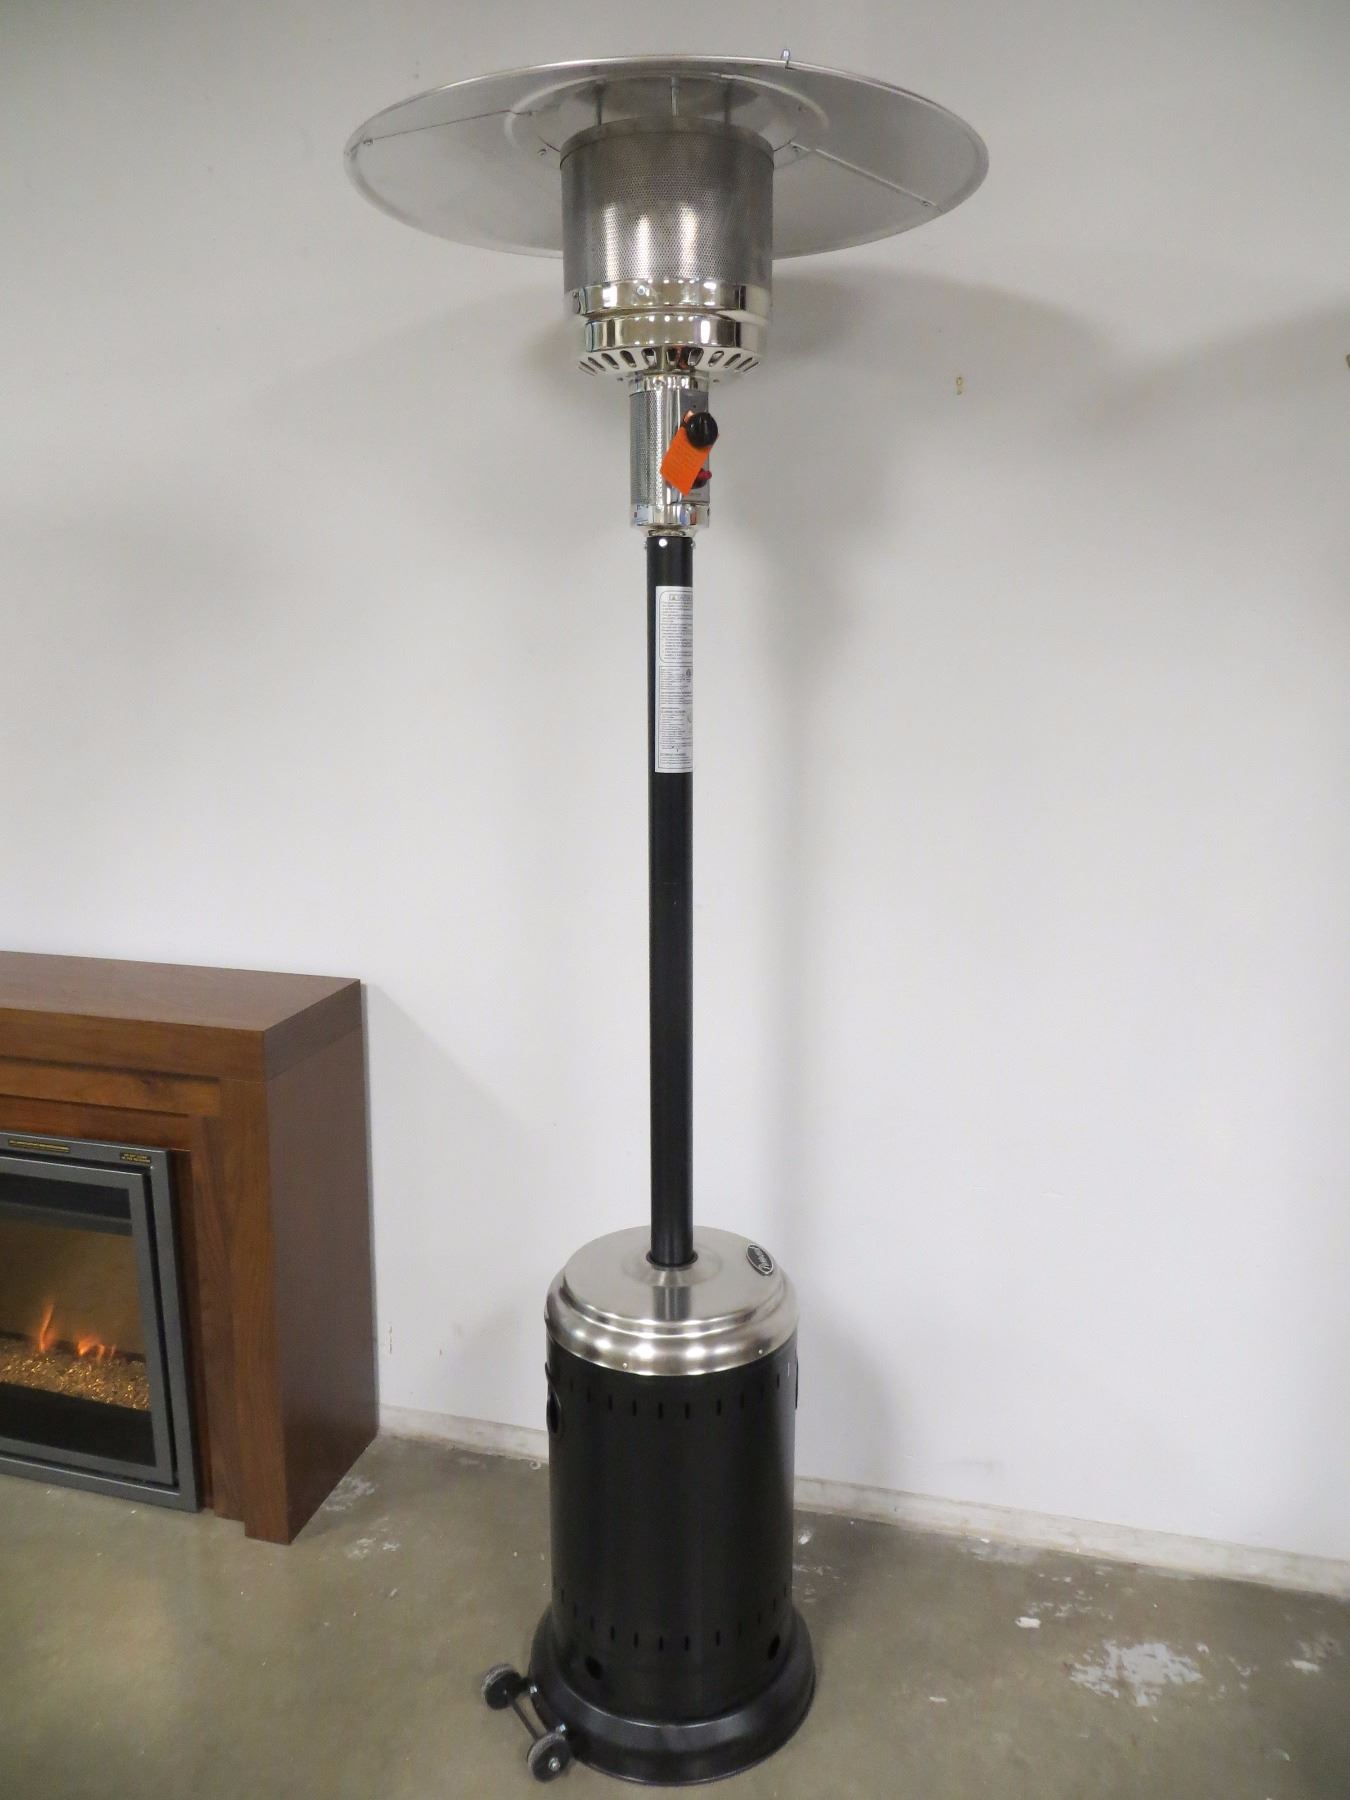 New In Box Paramount Patio Heater Black Stainless Steel